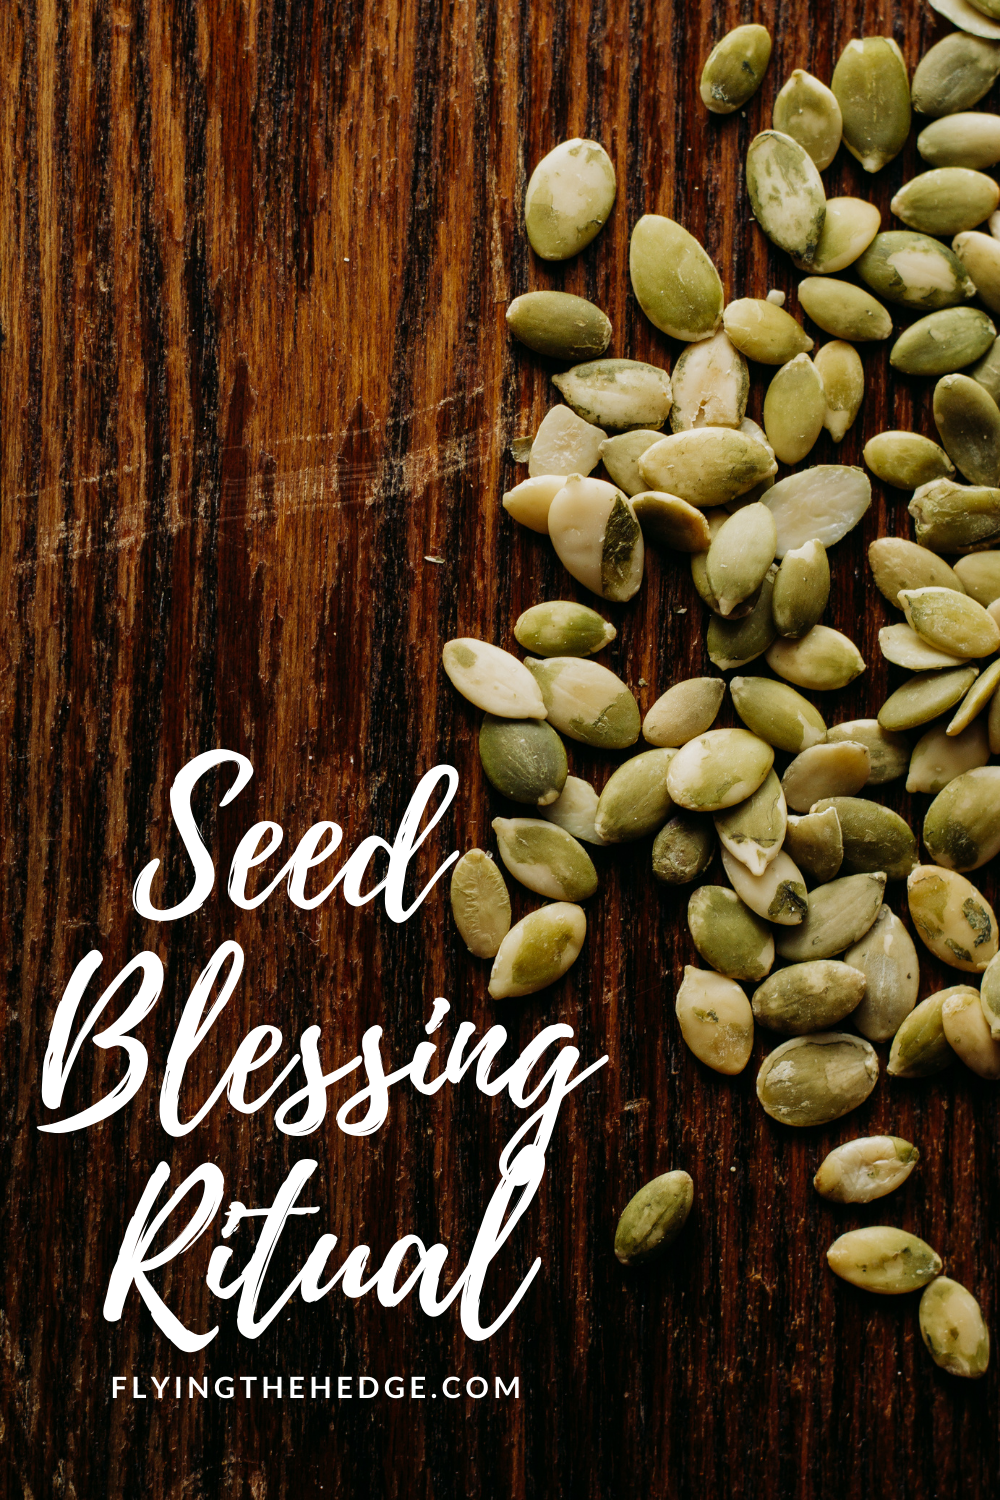 seed blessing, ritual, spell, magic, magick, witchcraft, witch, witchy, occult, pagan, neopagan, greenwitch, hedgewitch, green witch, hedge witch, wicca, wiccan